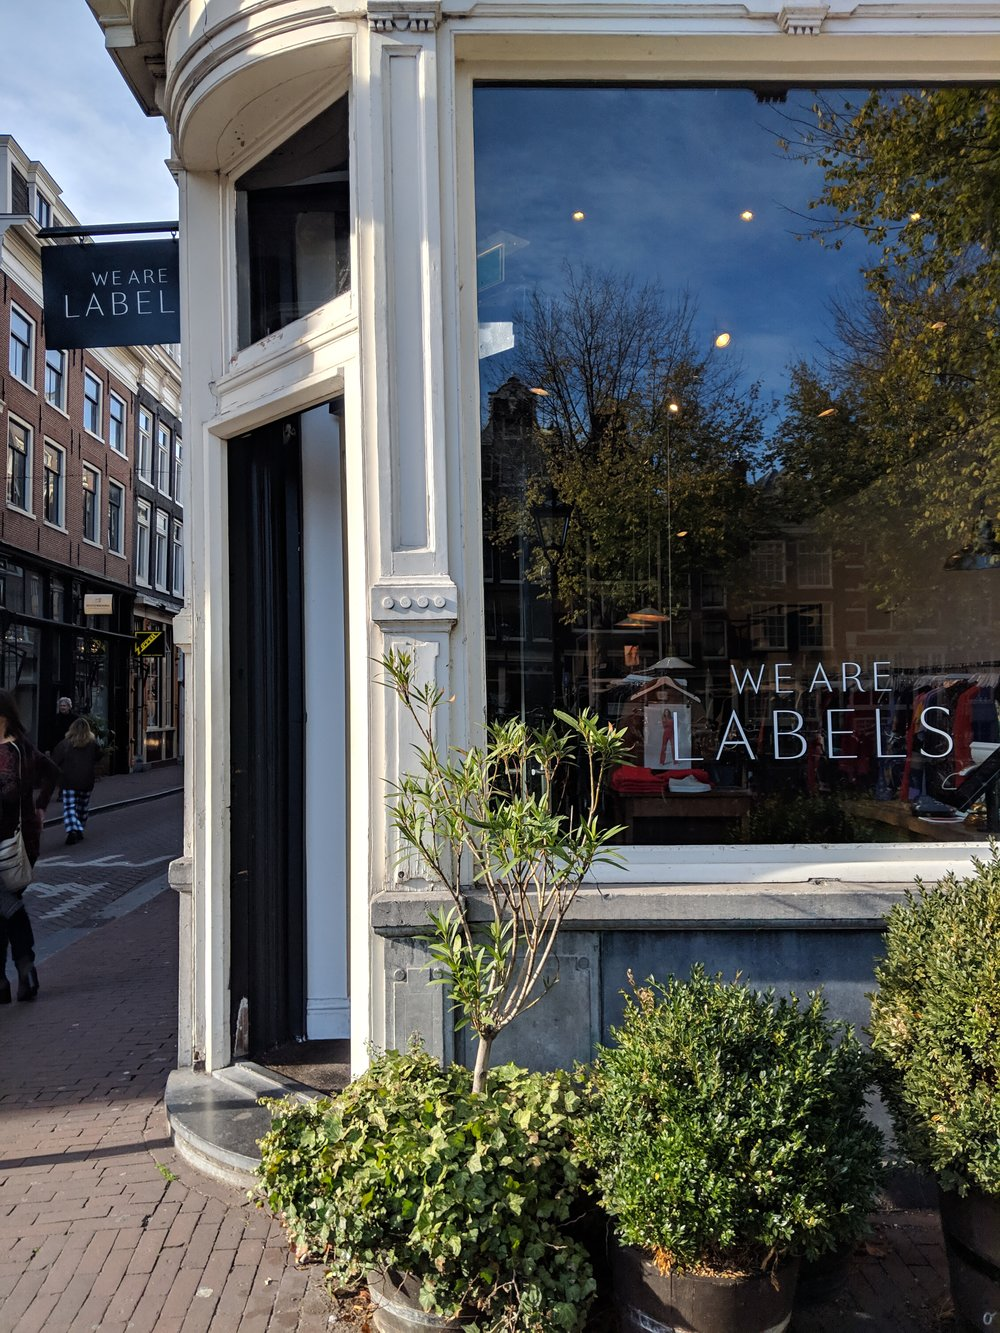 We are Labels - De 9 Straatjes Amsterdam - Image by peastyle